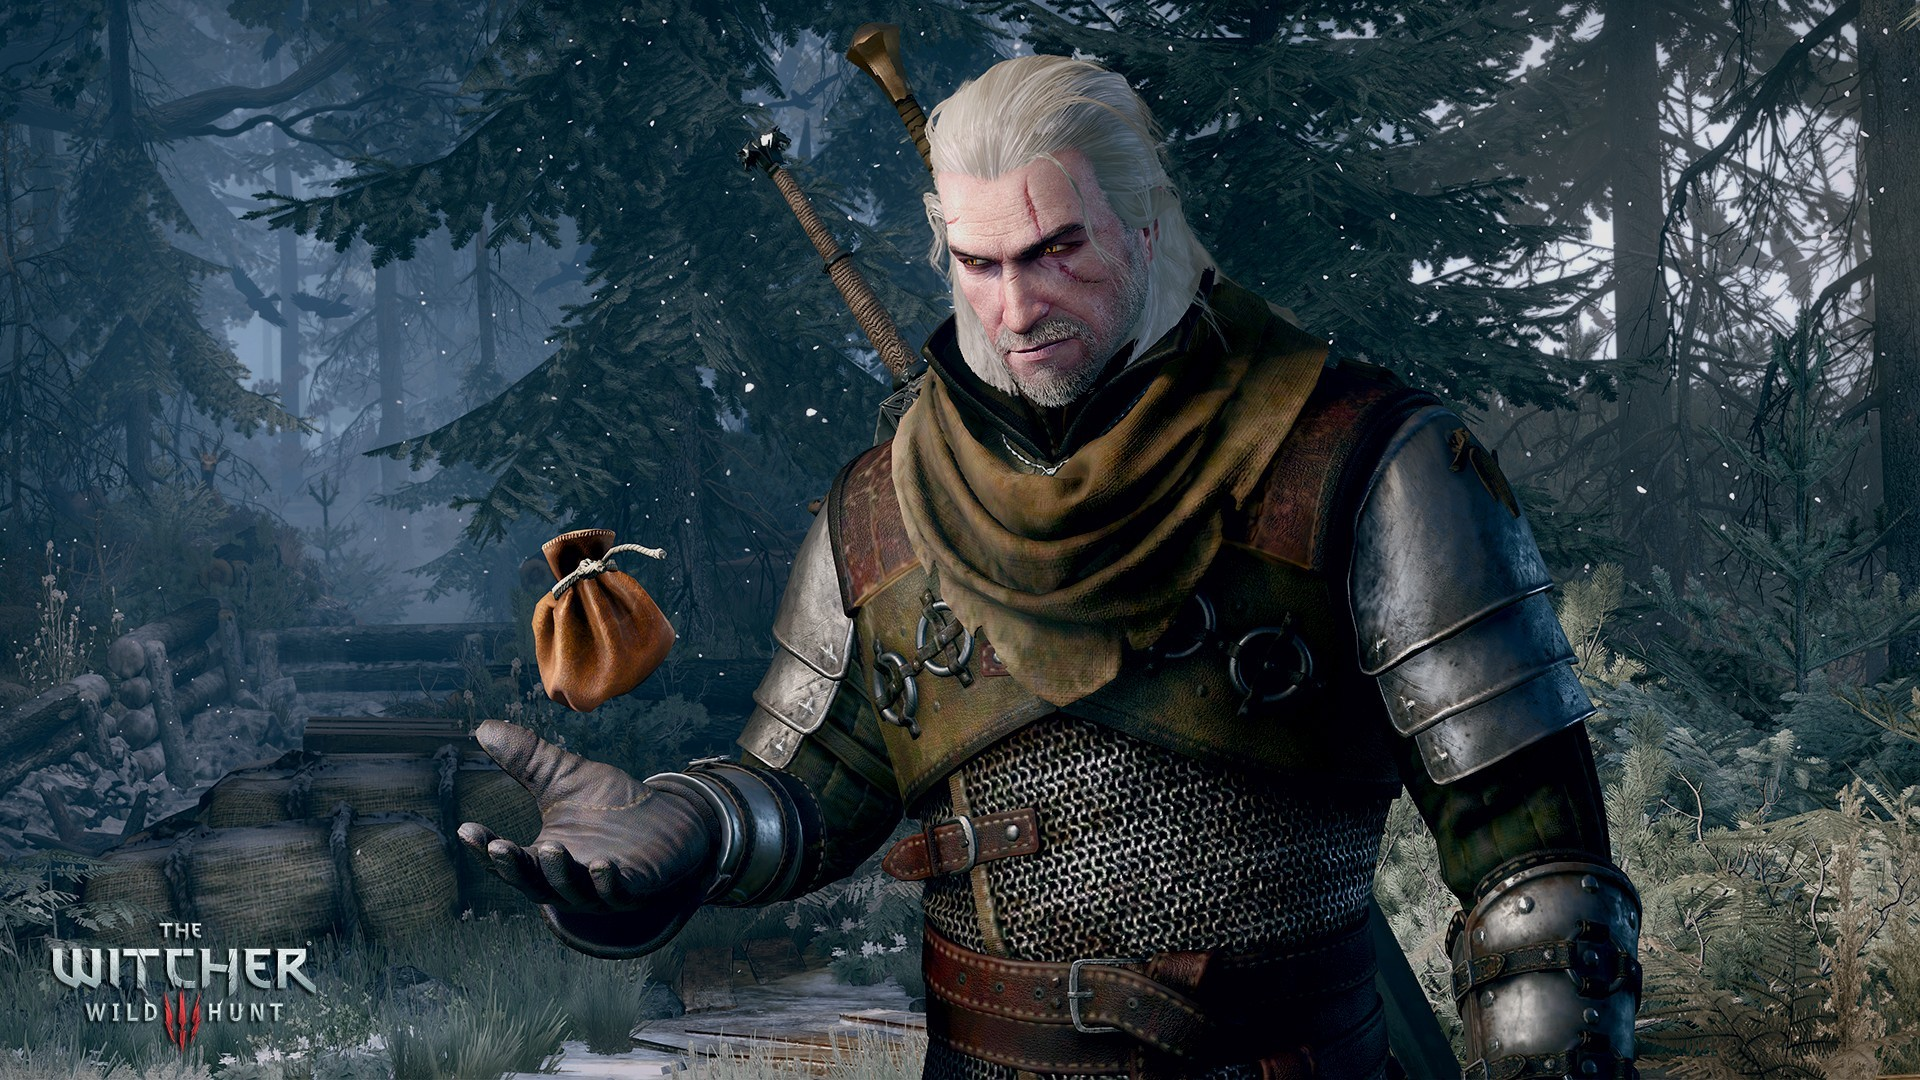 the witcher 3 patch 1.07  pc